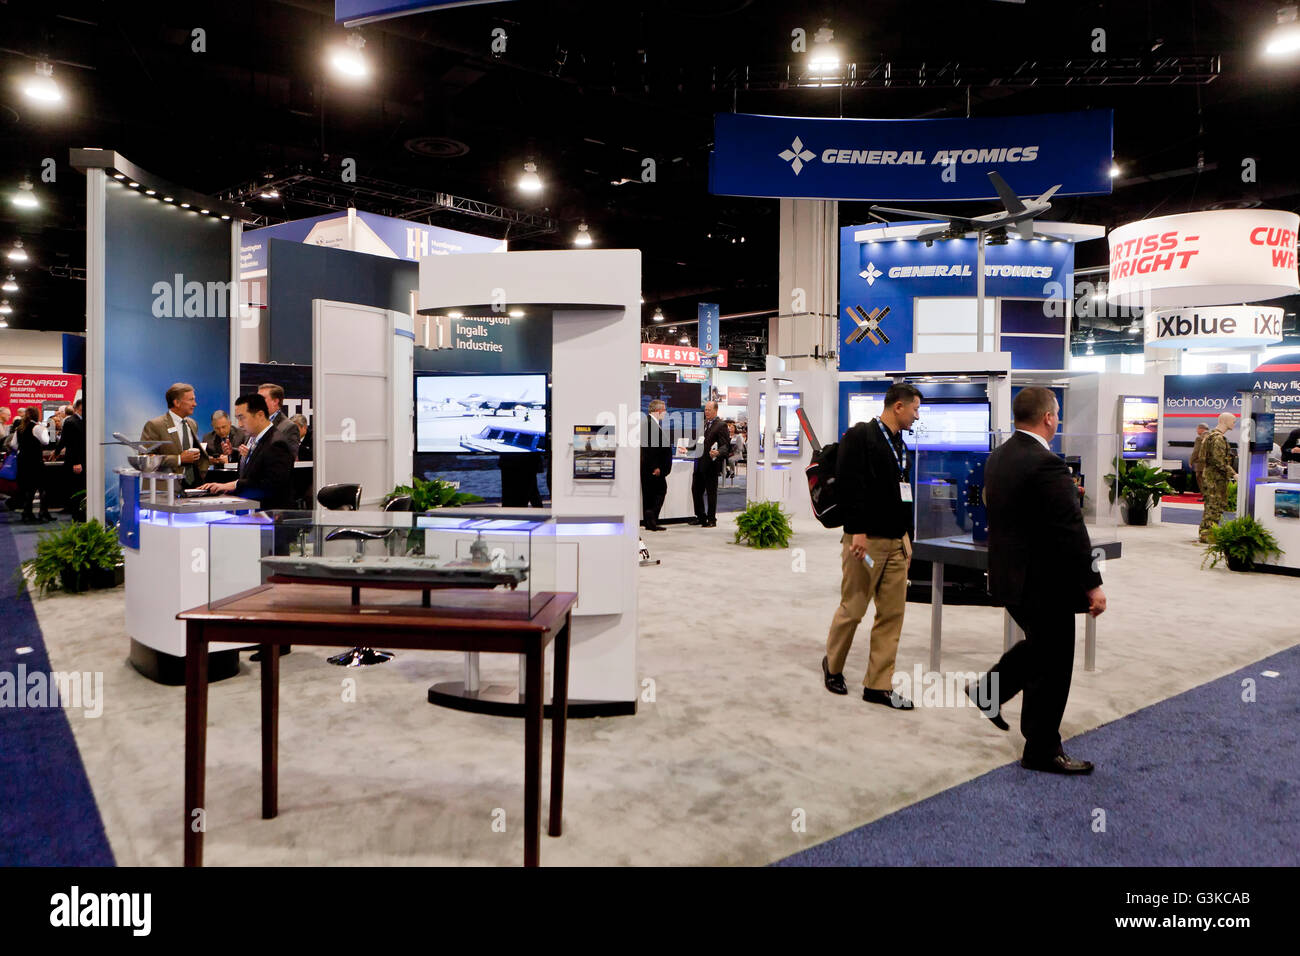 General Dynamics exhibit booth at US Navy League Sea-Air-Space Exposition - Washington, DC USA - Stock Image